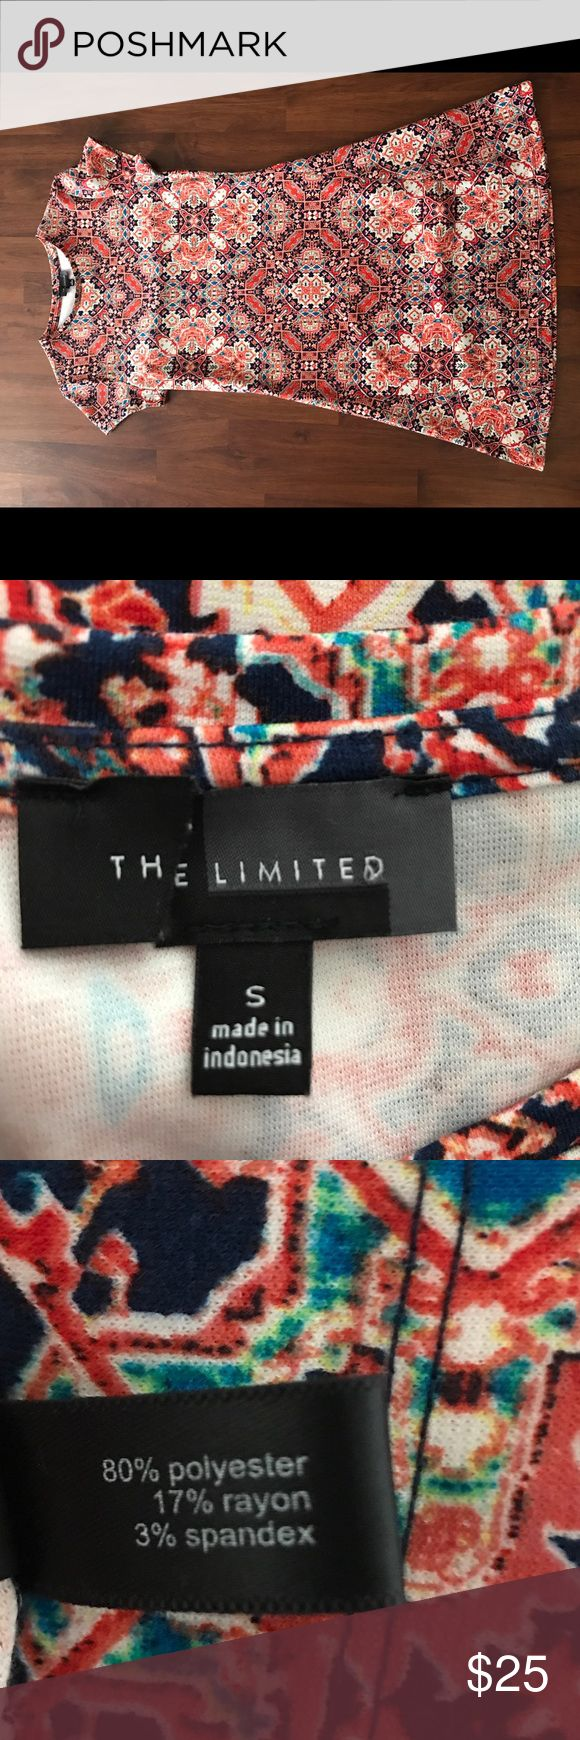 Printed The Limited Dress Never worn dress from The Limited. Dress it up or wear as is, perfect fit for any occasion. The Limited Dresses Mini